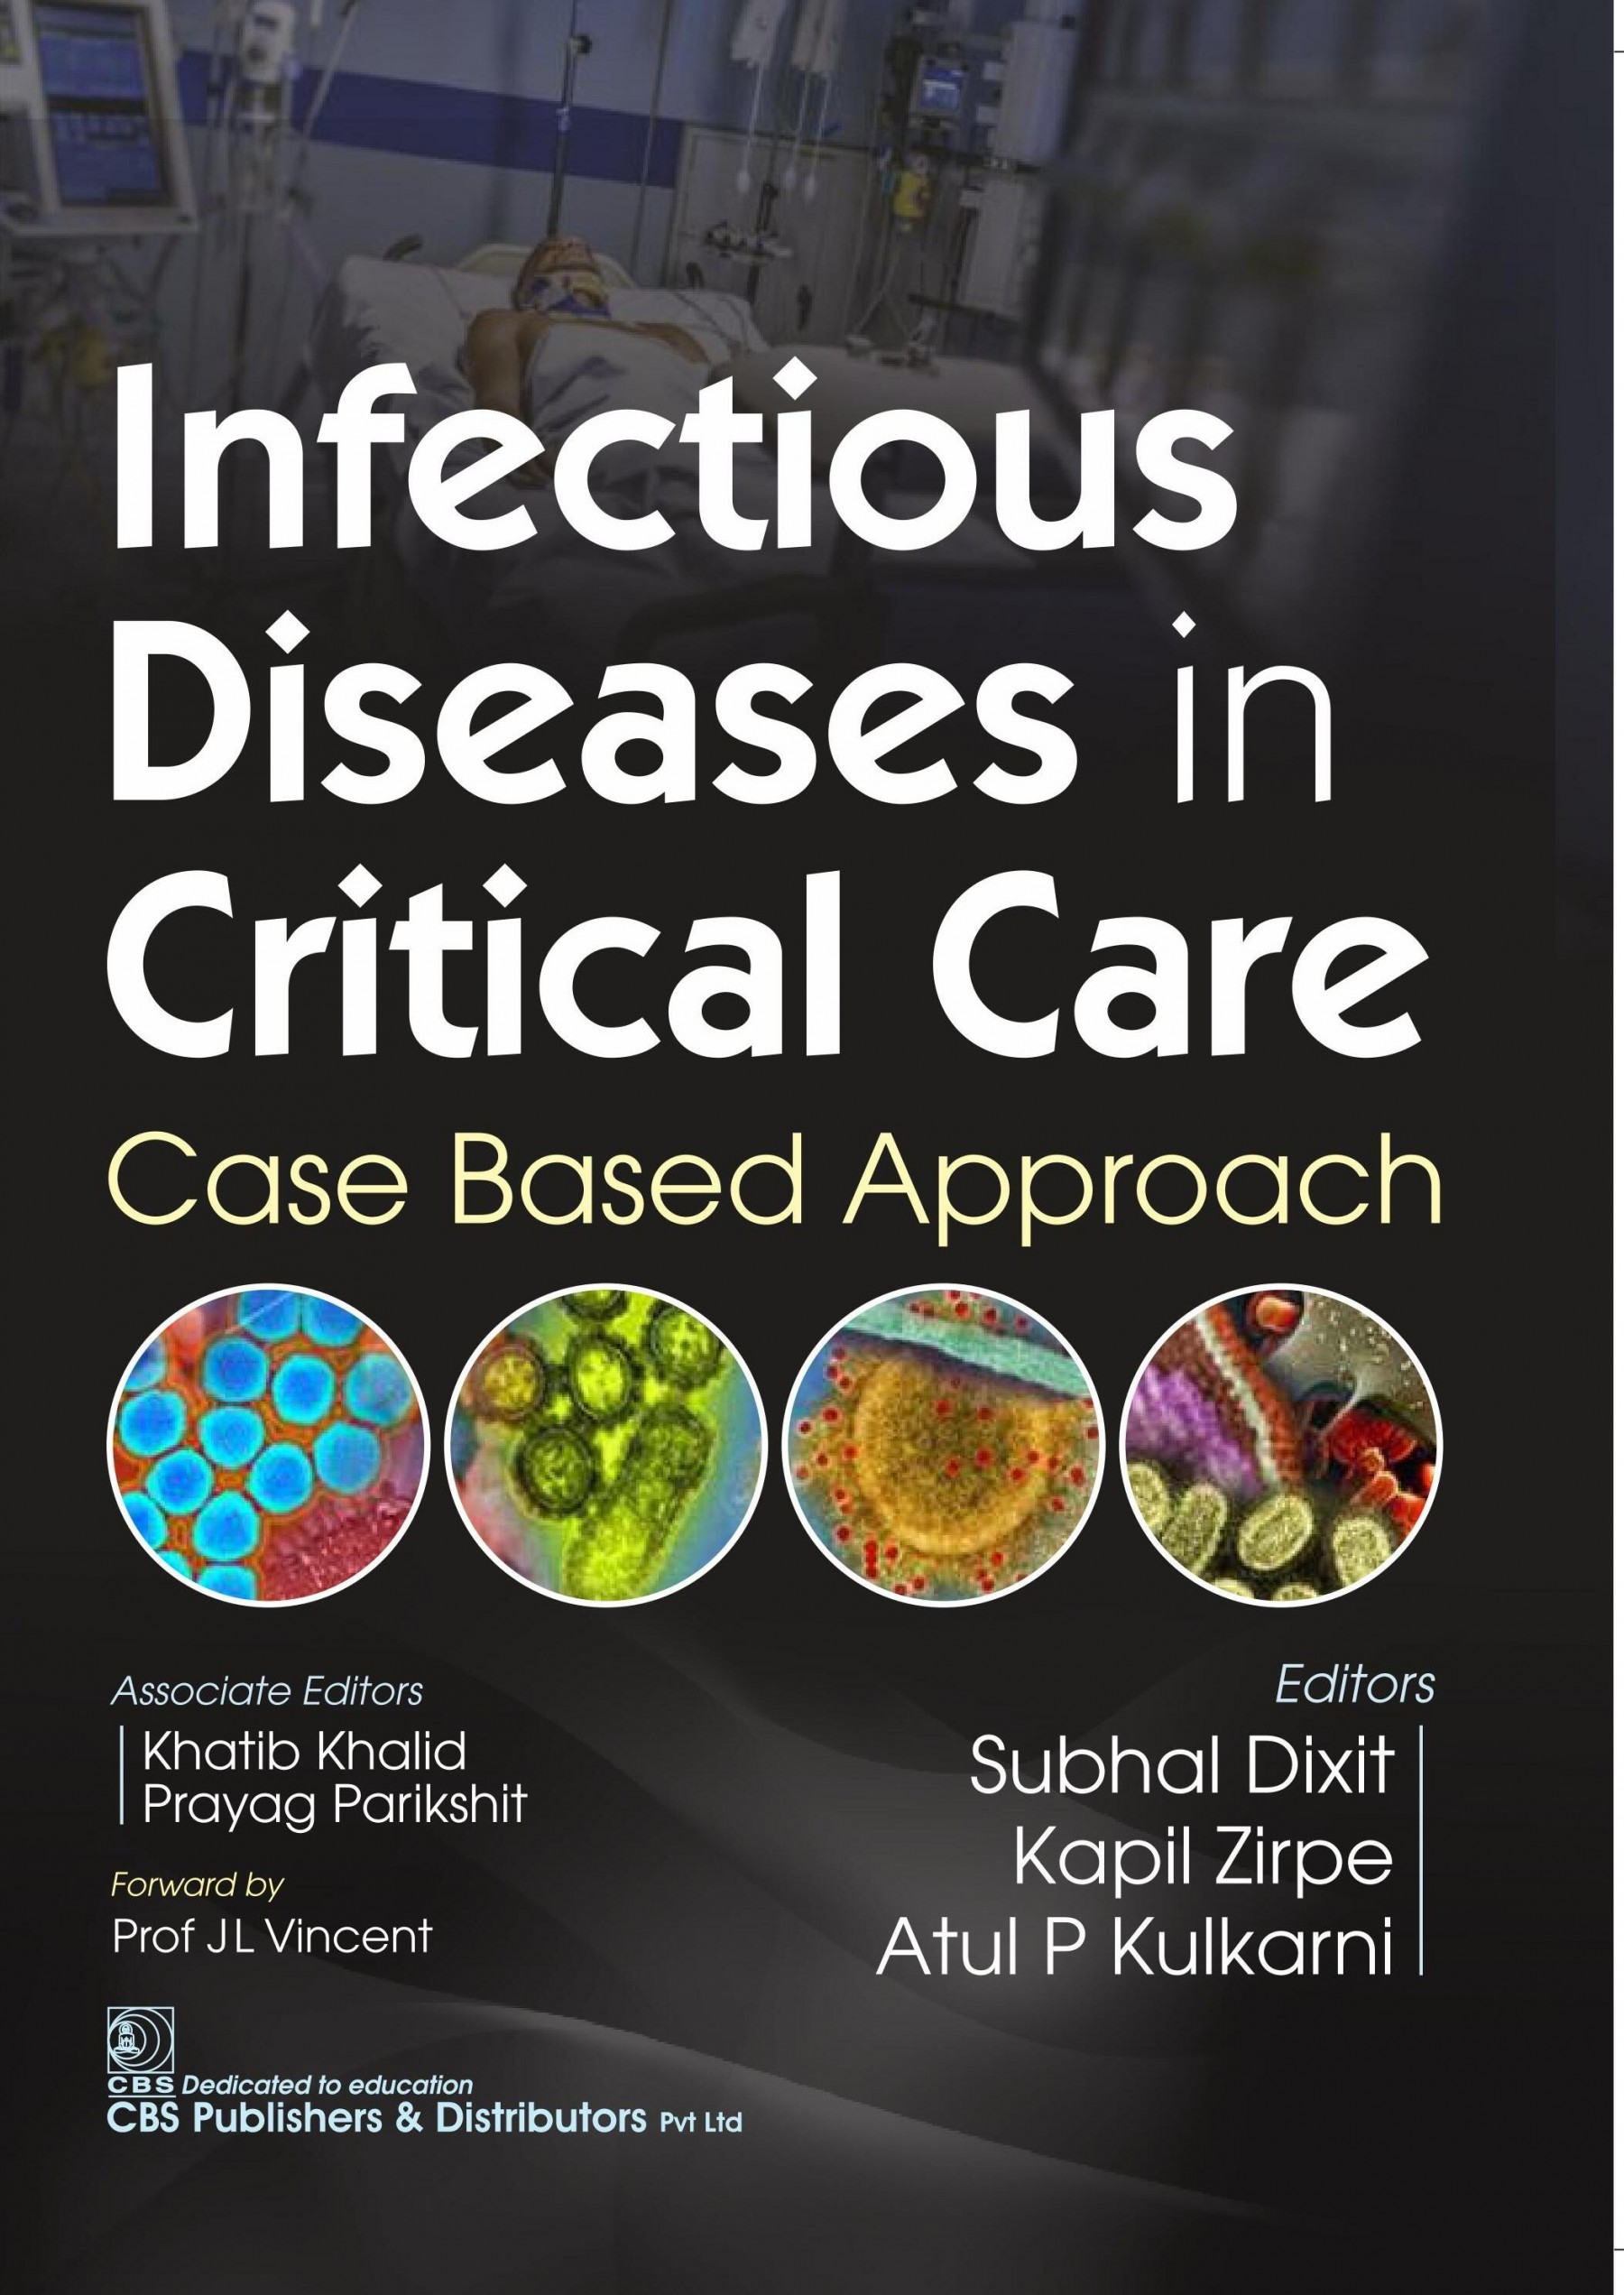 Infectious Disease in Critical Care